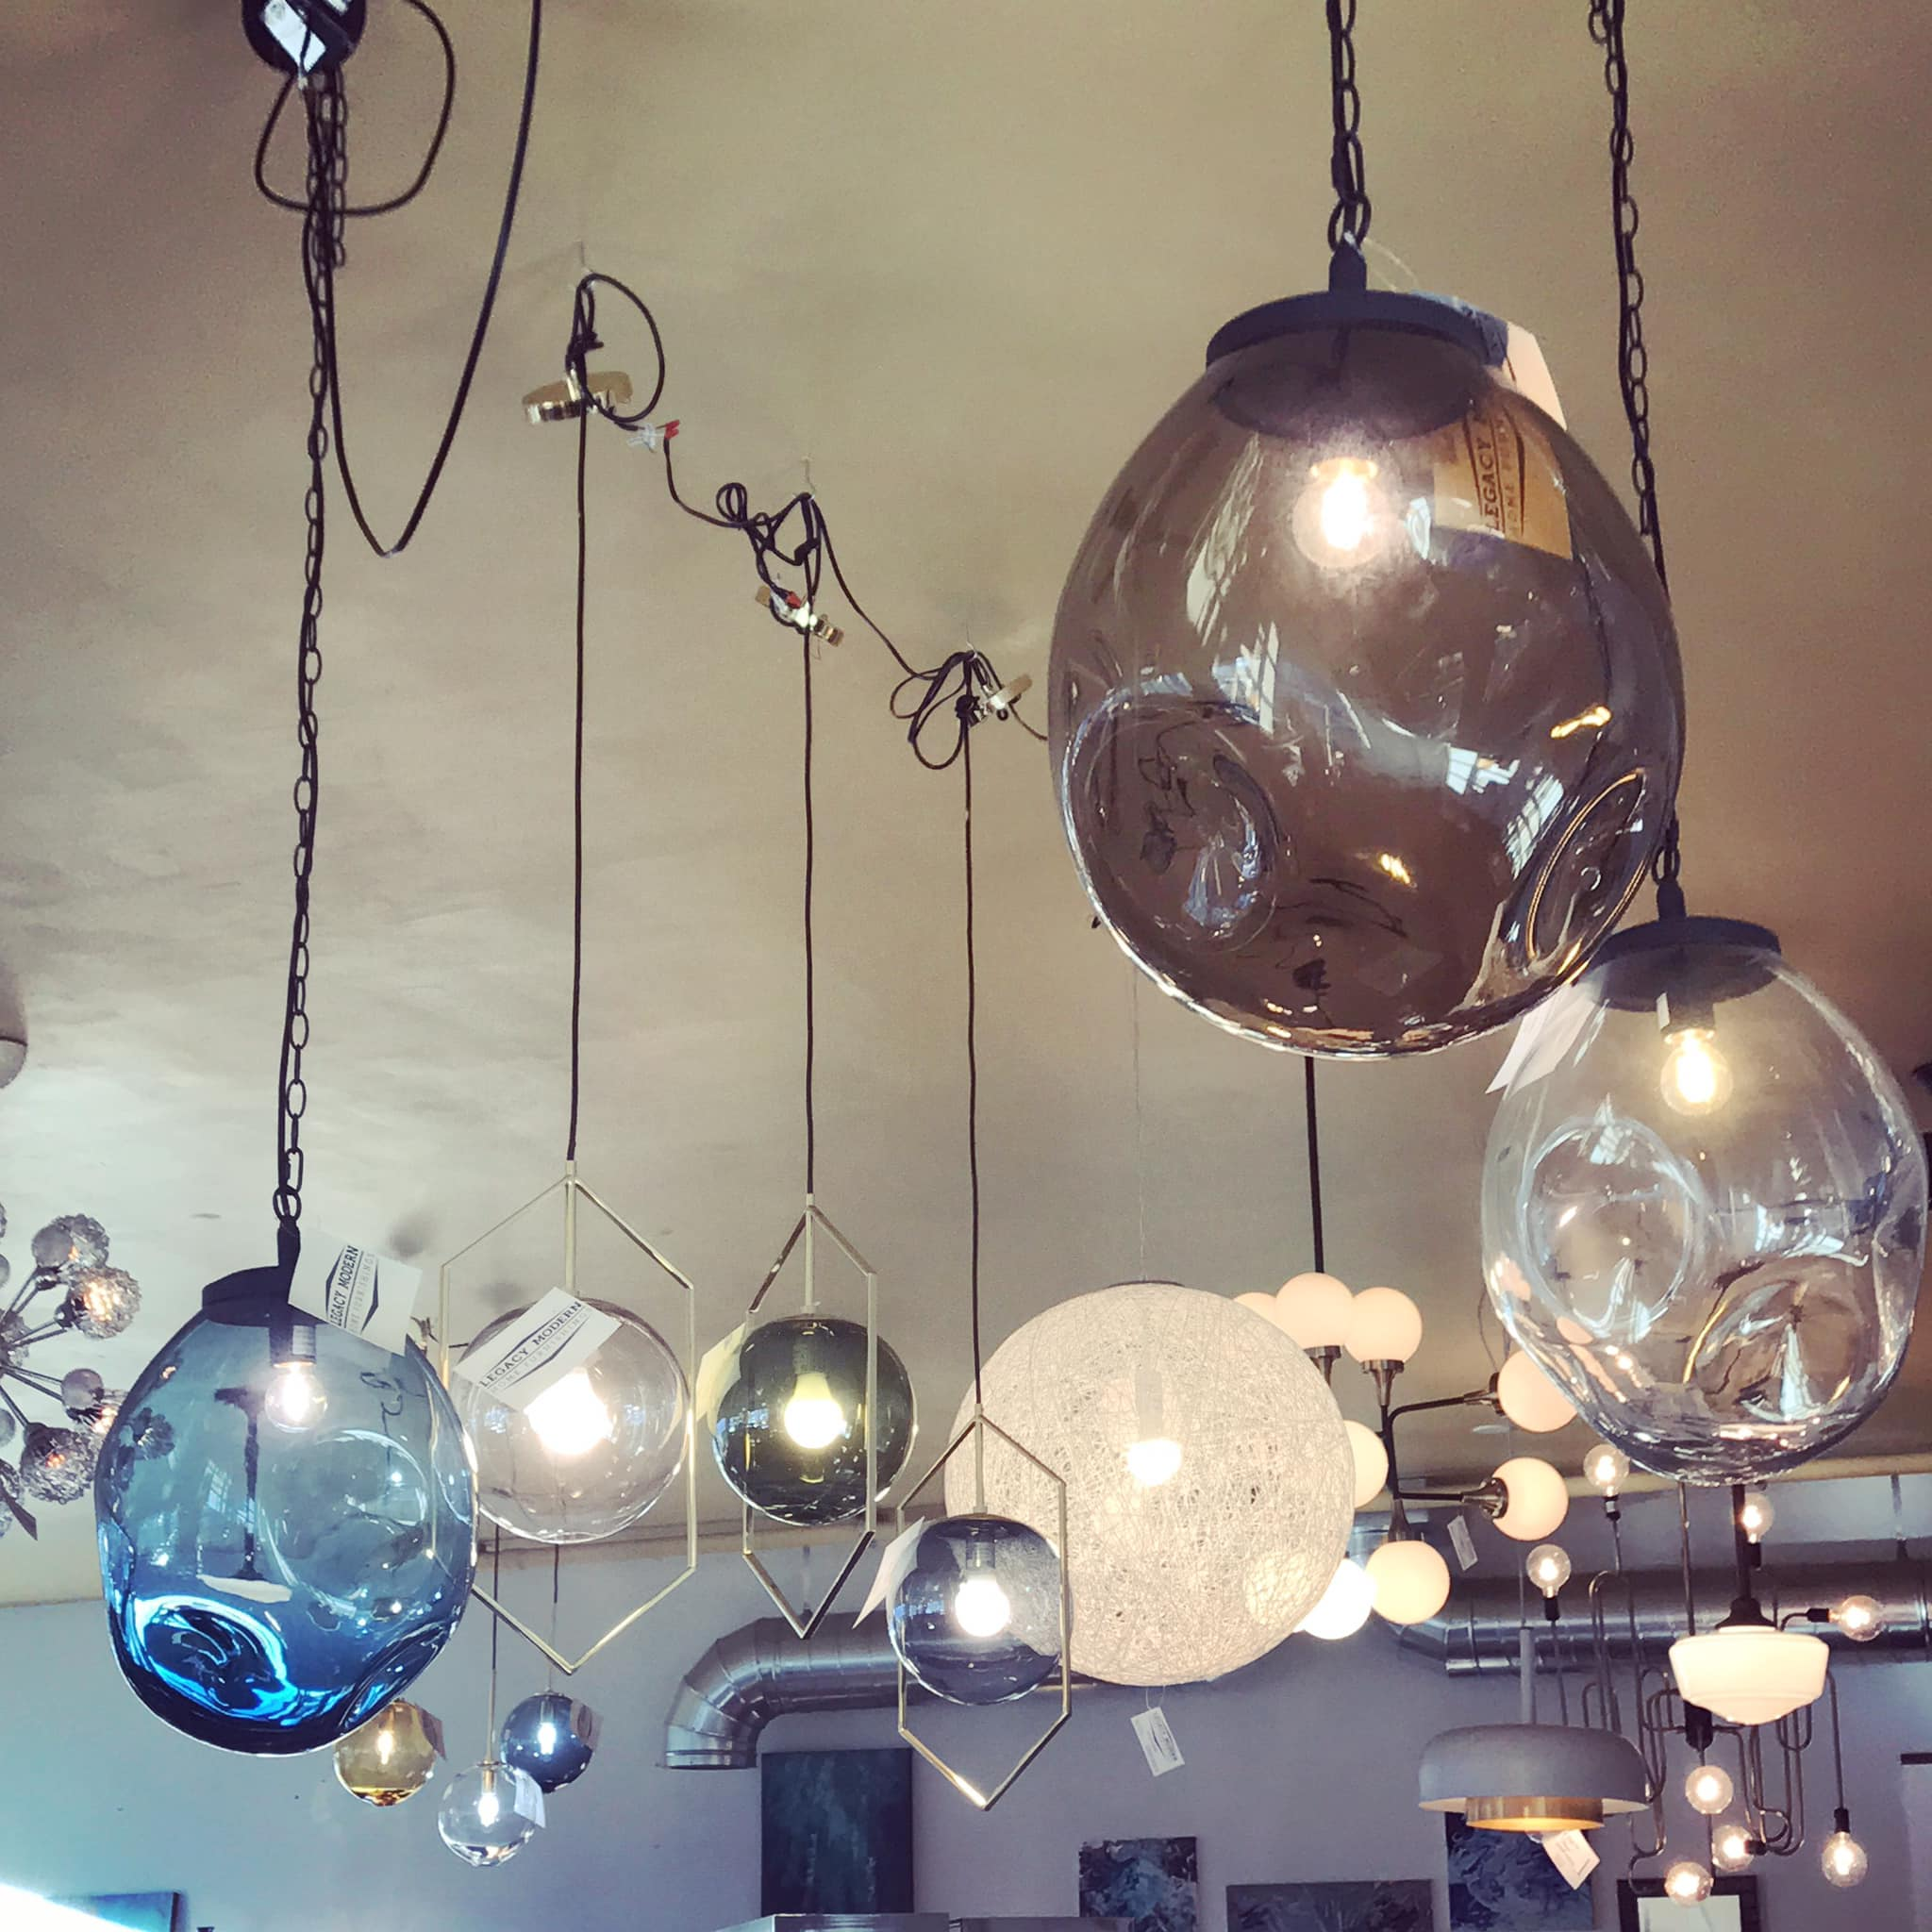 Come browse our beautiful new lighting from UMAGE, Casamotion & more, all on sale this weekend!